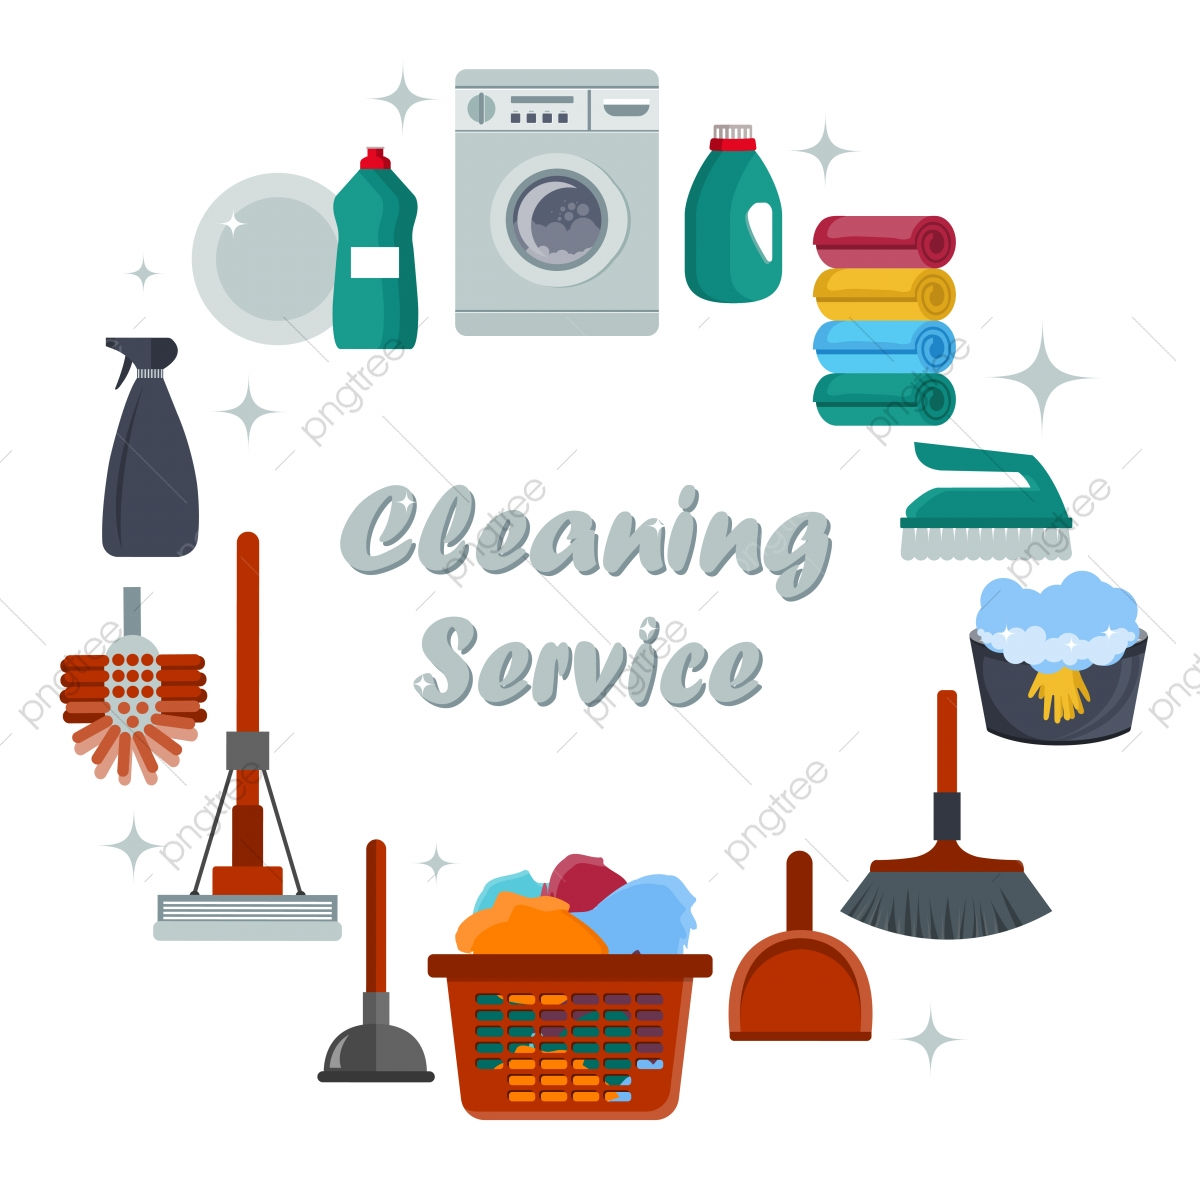 equipment cleaning service concept poster template for house cleaning services  abstract